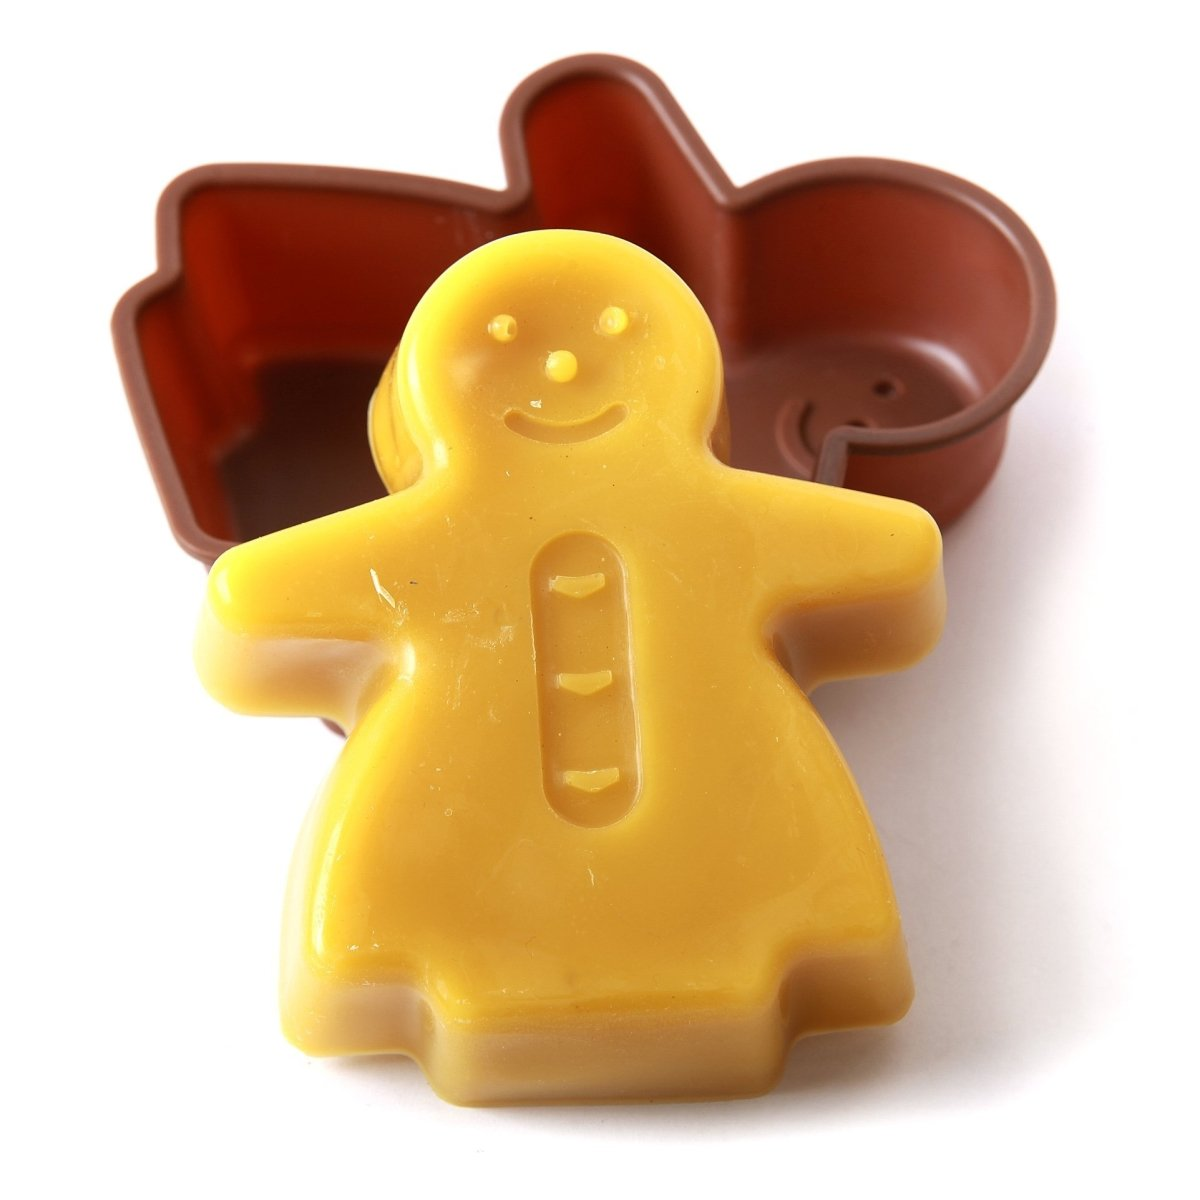 Gingerbread Woman Cake/Jelly/Soap Silicone Soap Mould B0011 - Mystic Moments UK